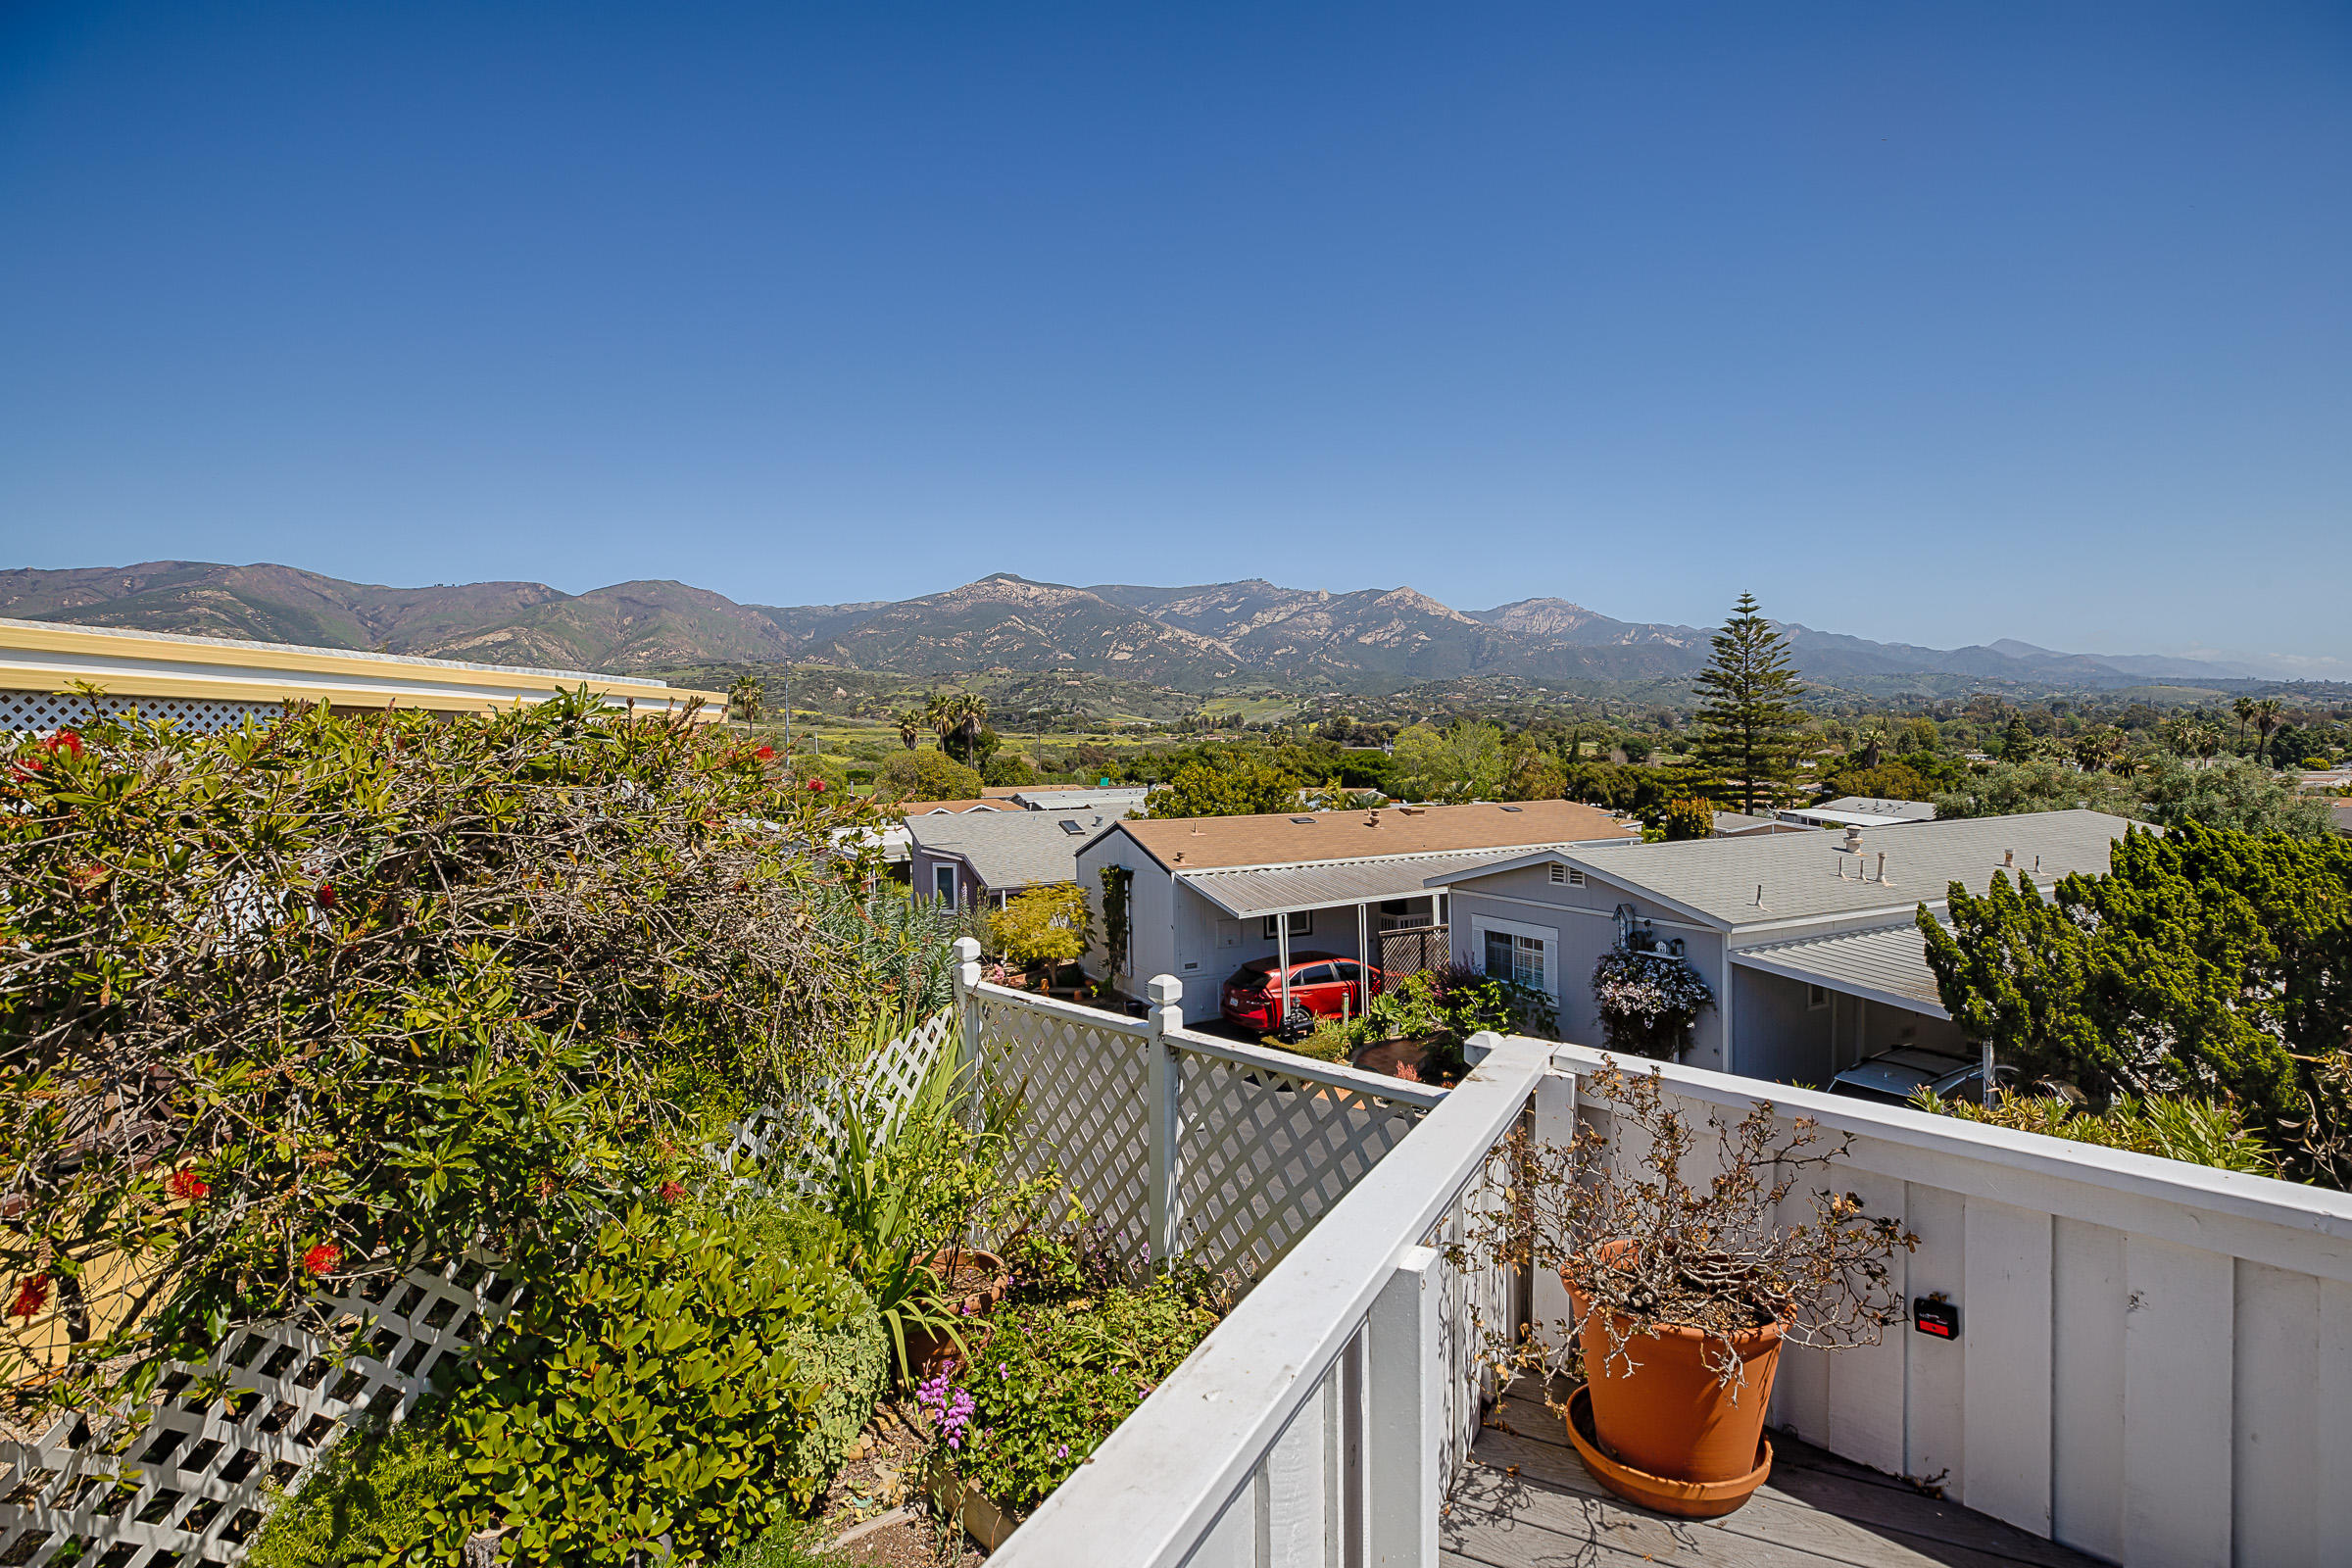 THE MOST OUTRAGEOUS views in Rancho Santa Barbara!!!  City, mountain, canyon, Hope Ranch and golf course views!  Top of the park, one of only 6 homes on ''Millionaire's Row''.  Enclosed sunroom. Living has fireplace stove and french doors to view deck. Separate dining. Large kitchen with center island. Master has large closet and bath with dual vanities. Guest bedroom and guest bath.   Laundry room.  Carport and shed. Lovely gardens.  DO NOT DISTURB OWNER. By appt. only.